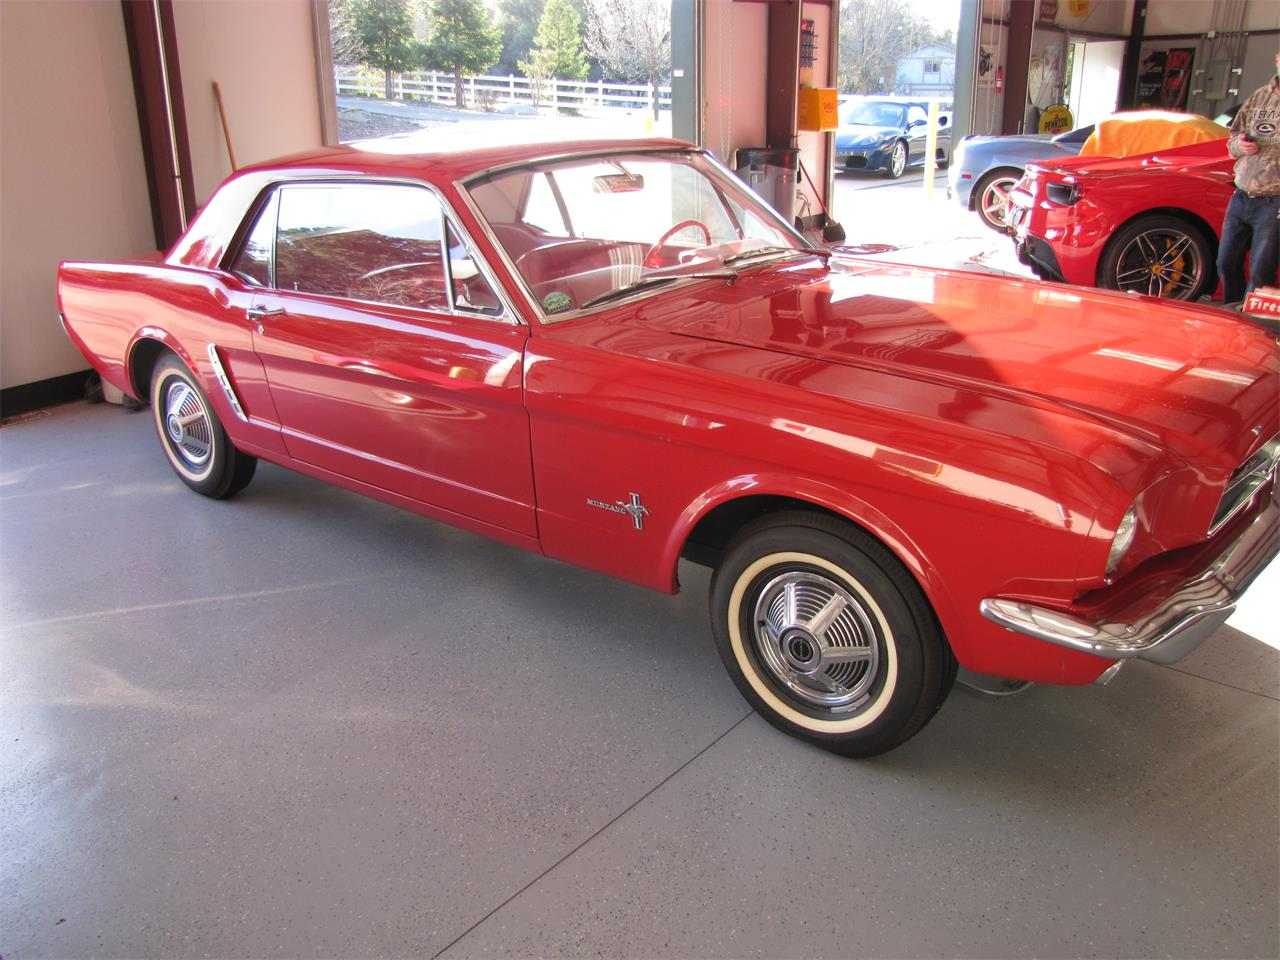 Large Picture of Classic 1965 Ford Mustang located in California - $23,500.00 - Q6BT